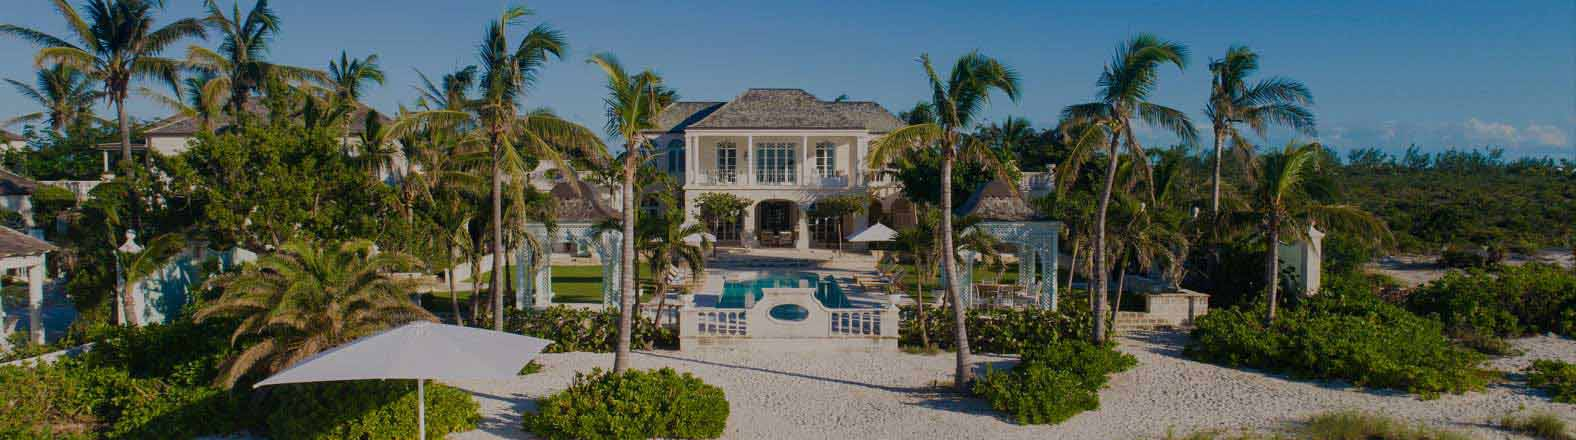 Top Amenities To Look Out For In A Villa Rental